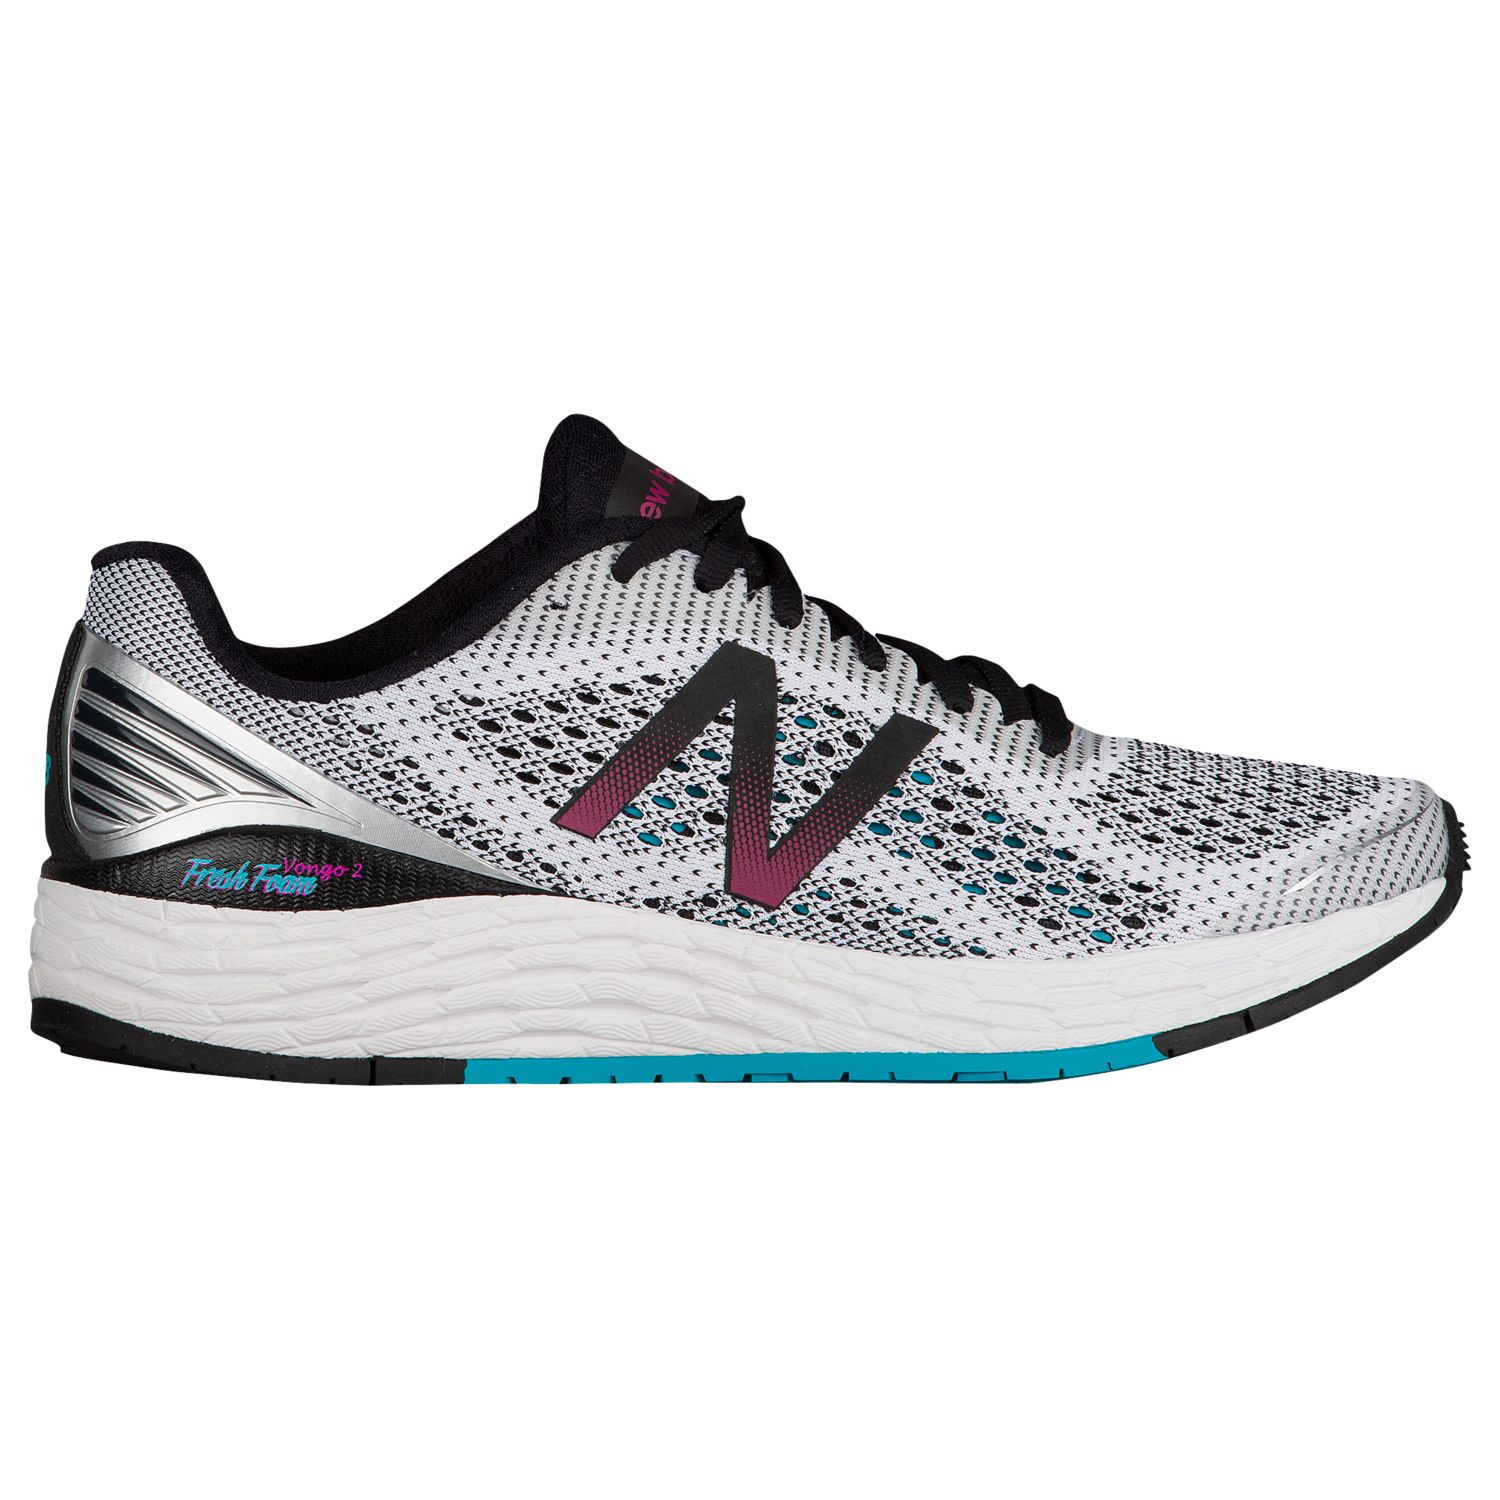 saucony ride 7 vs mizuno wave rider